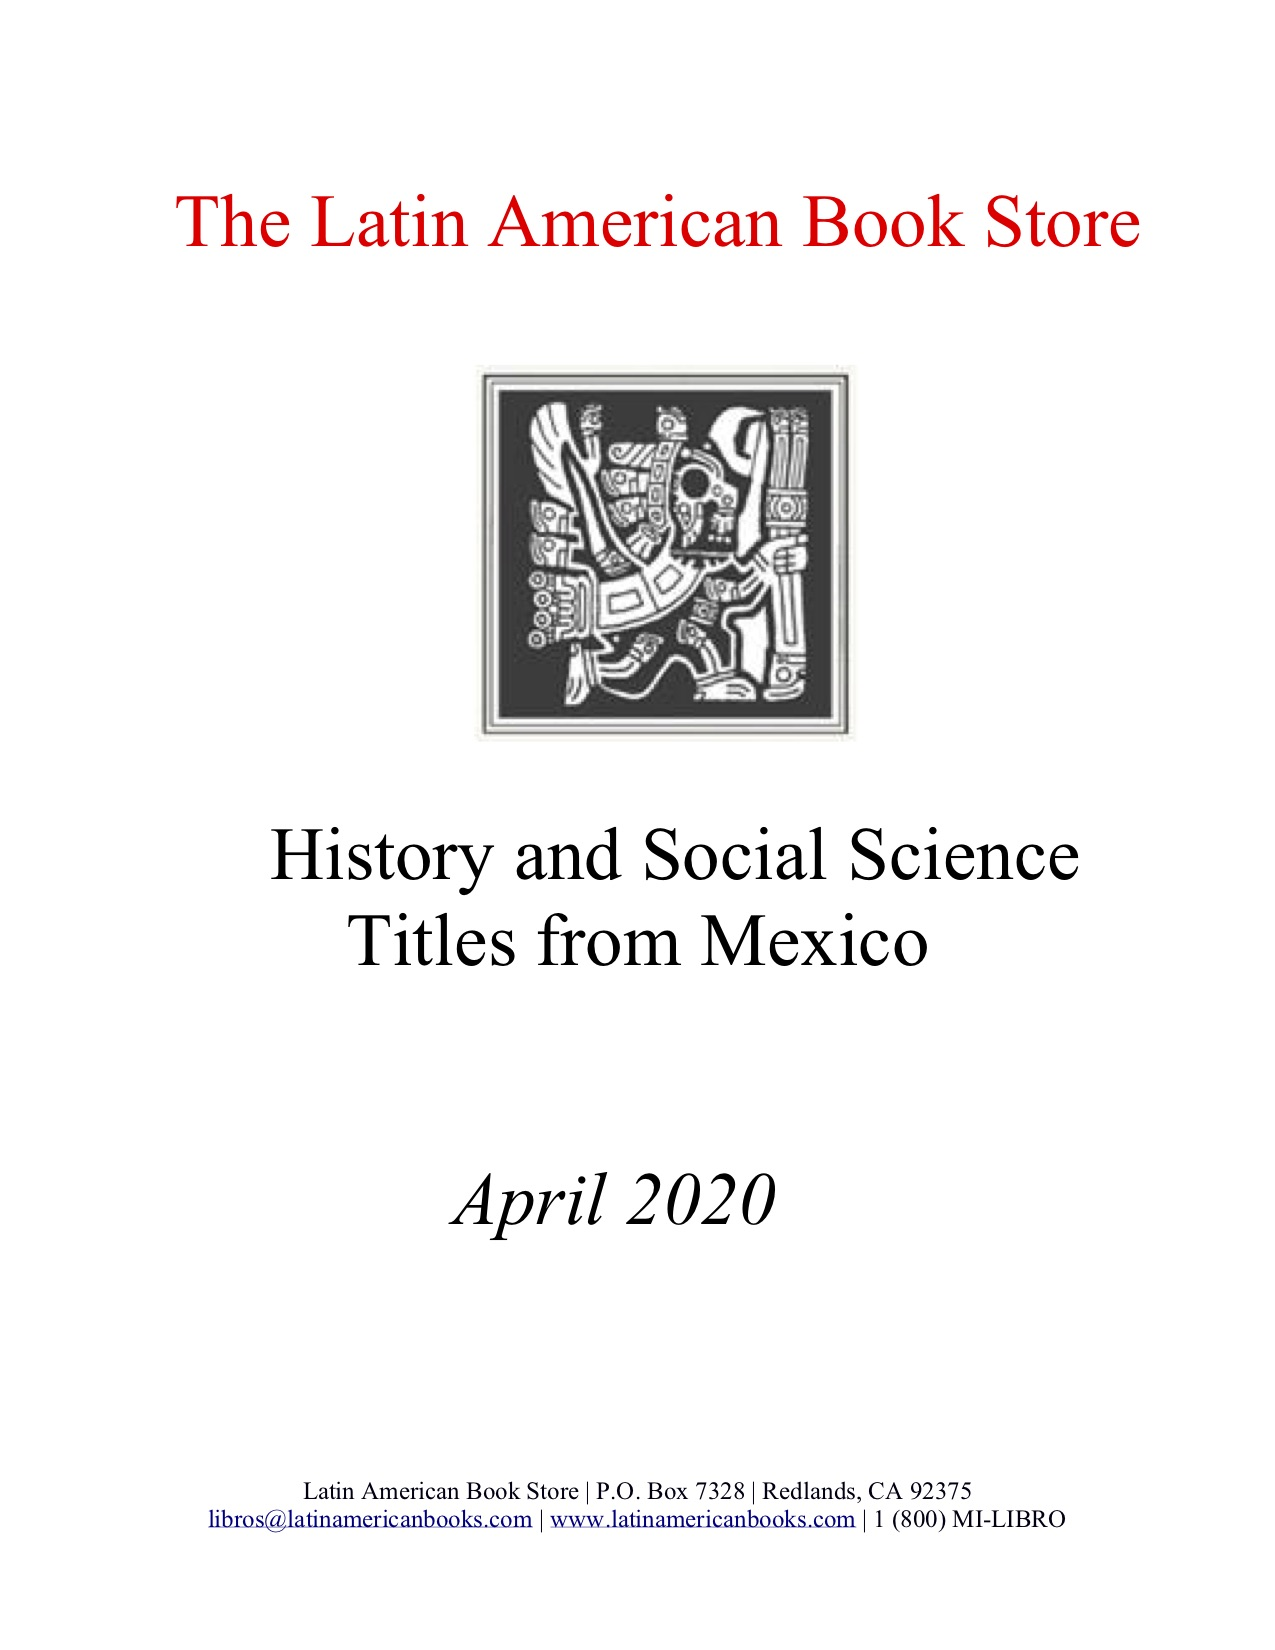 Mexican History and Social Sciences Titles -- April 2020